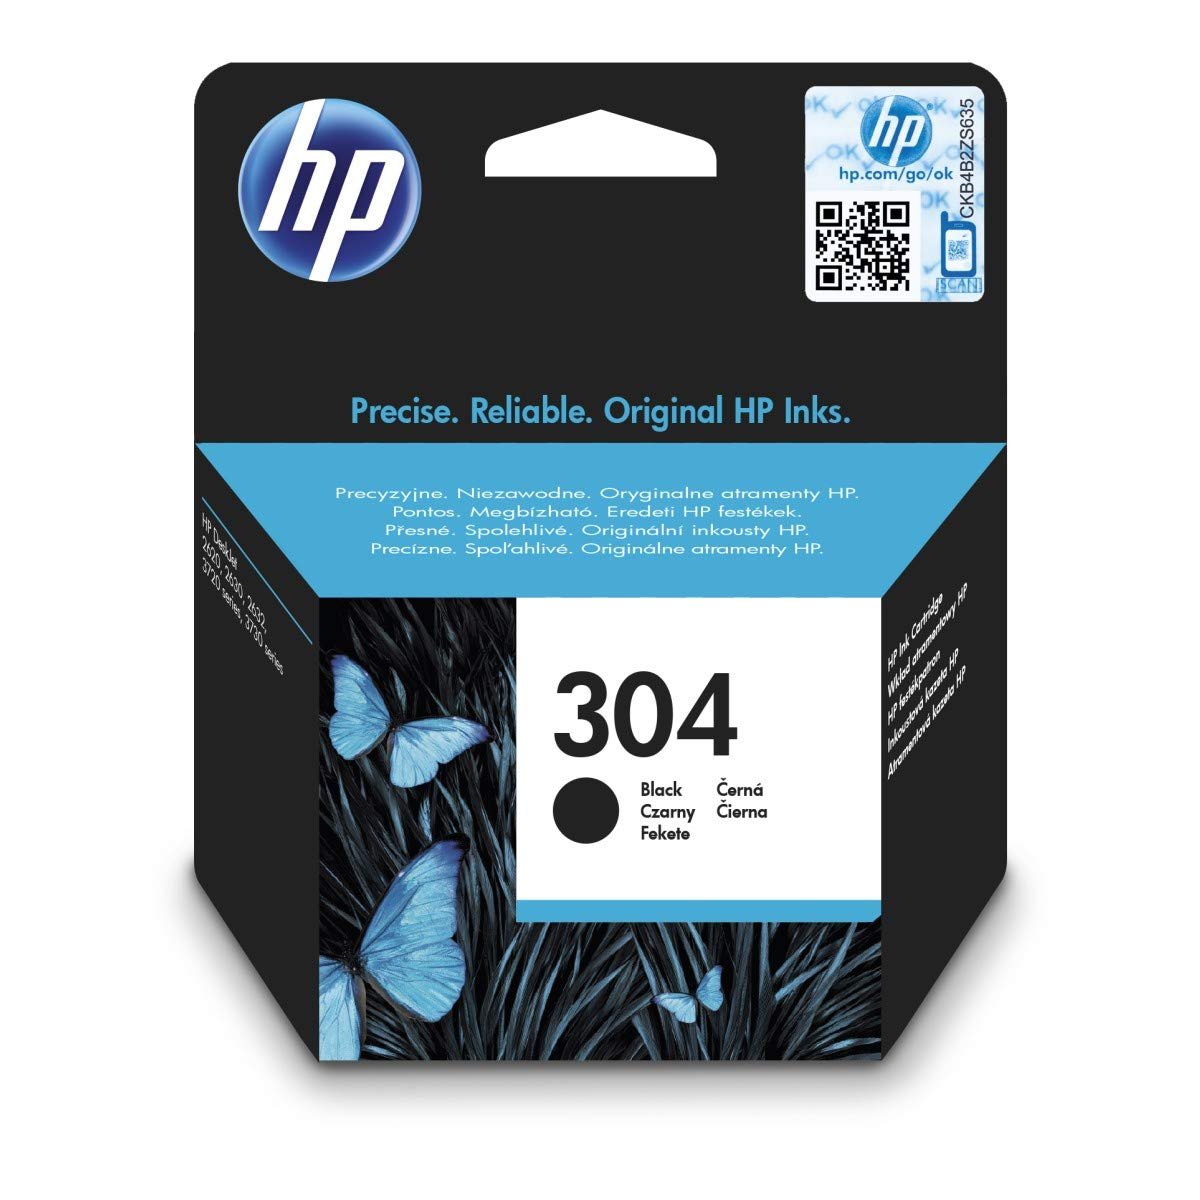 HP 304XL Inkjet / getto d'inchiostro Cartuccia originale Hewlett Packard N9K08AE